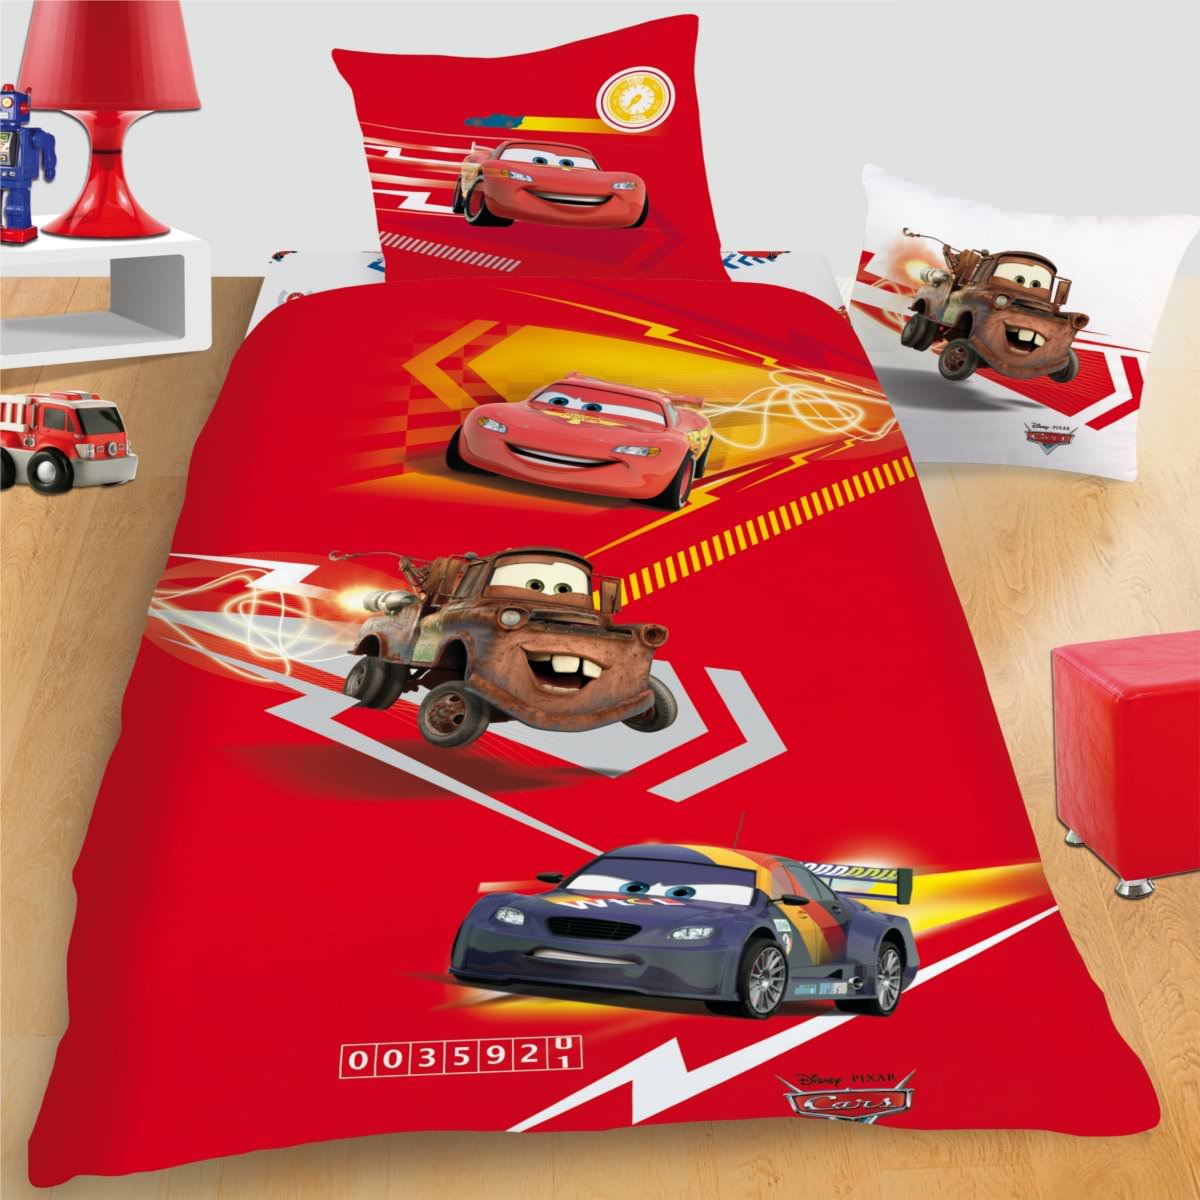 cars 140x200 good nb cars buddies selimut bulu orange x cm with cars 140x200 gallery of dtsk. Black Bedroom Furniture Sets. Home Design Ideas